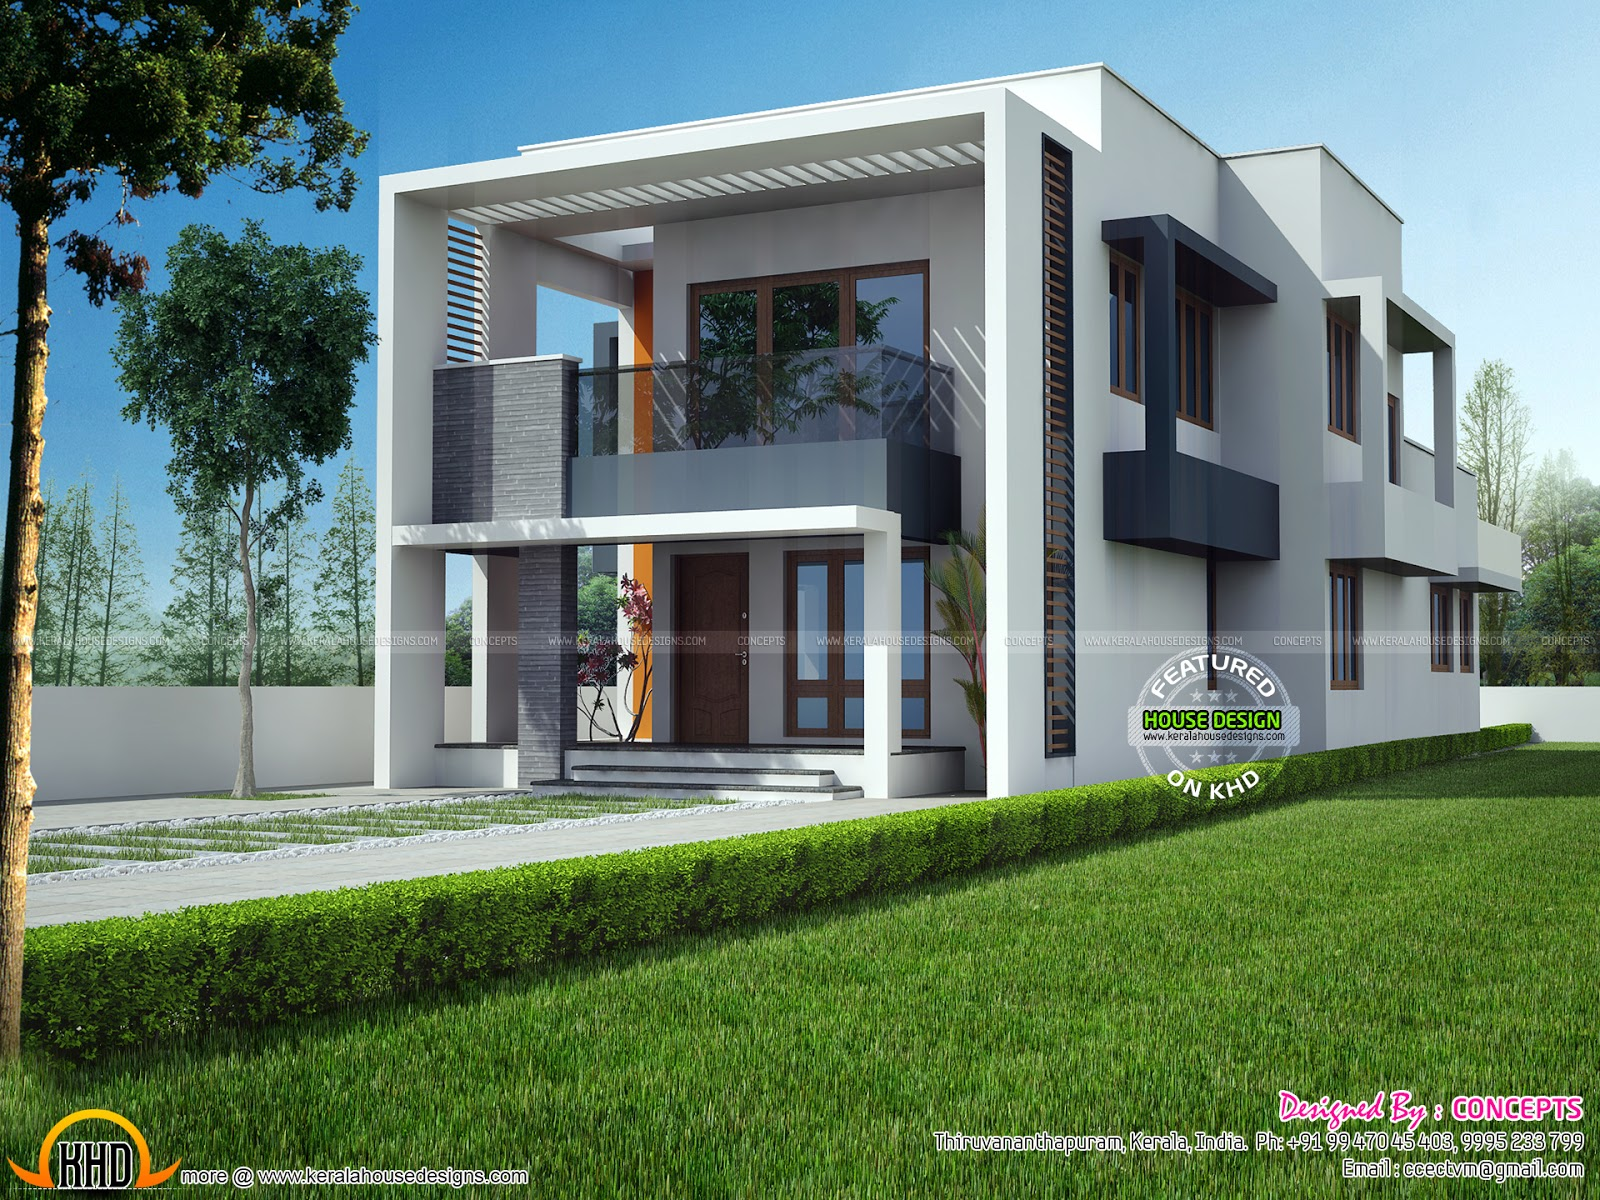 Floor plan available of this 2000 sq ft home kerala home 2000 sq ft house images